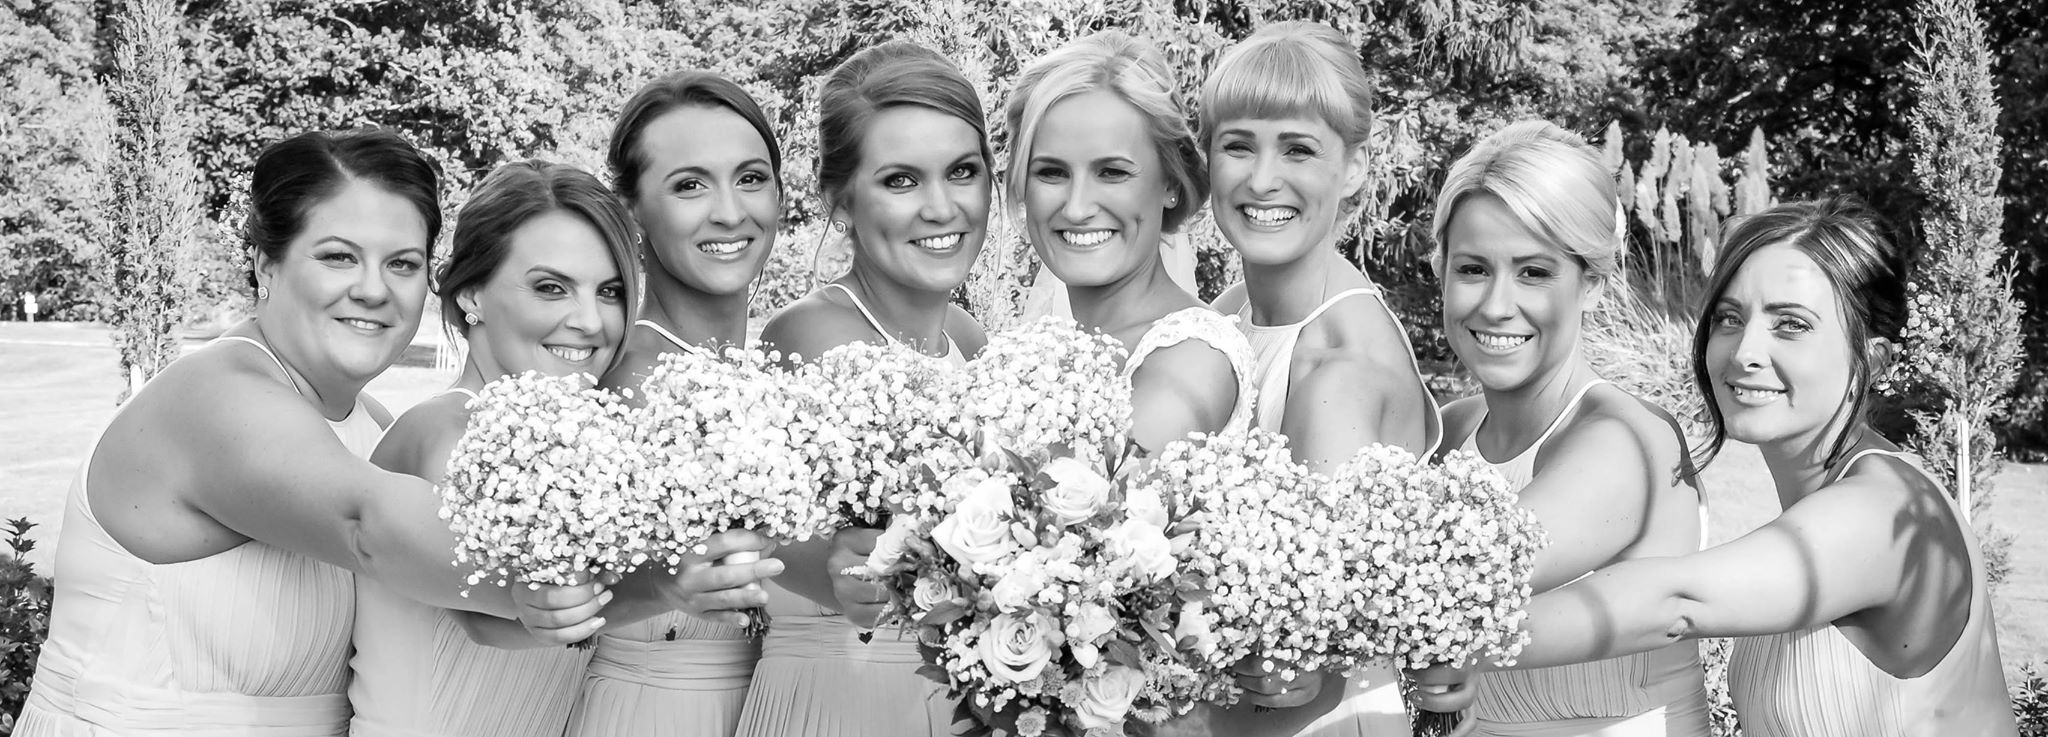 Wedding Photography Hampshire - Lorraine Morgan Photography